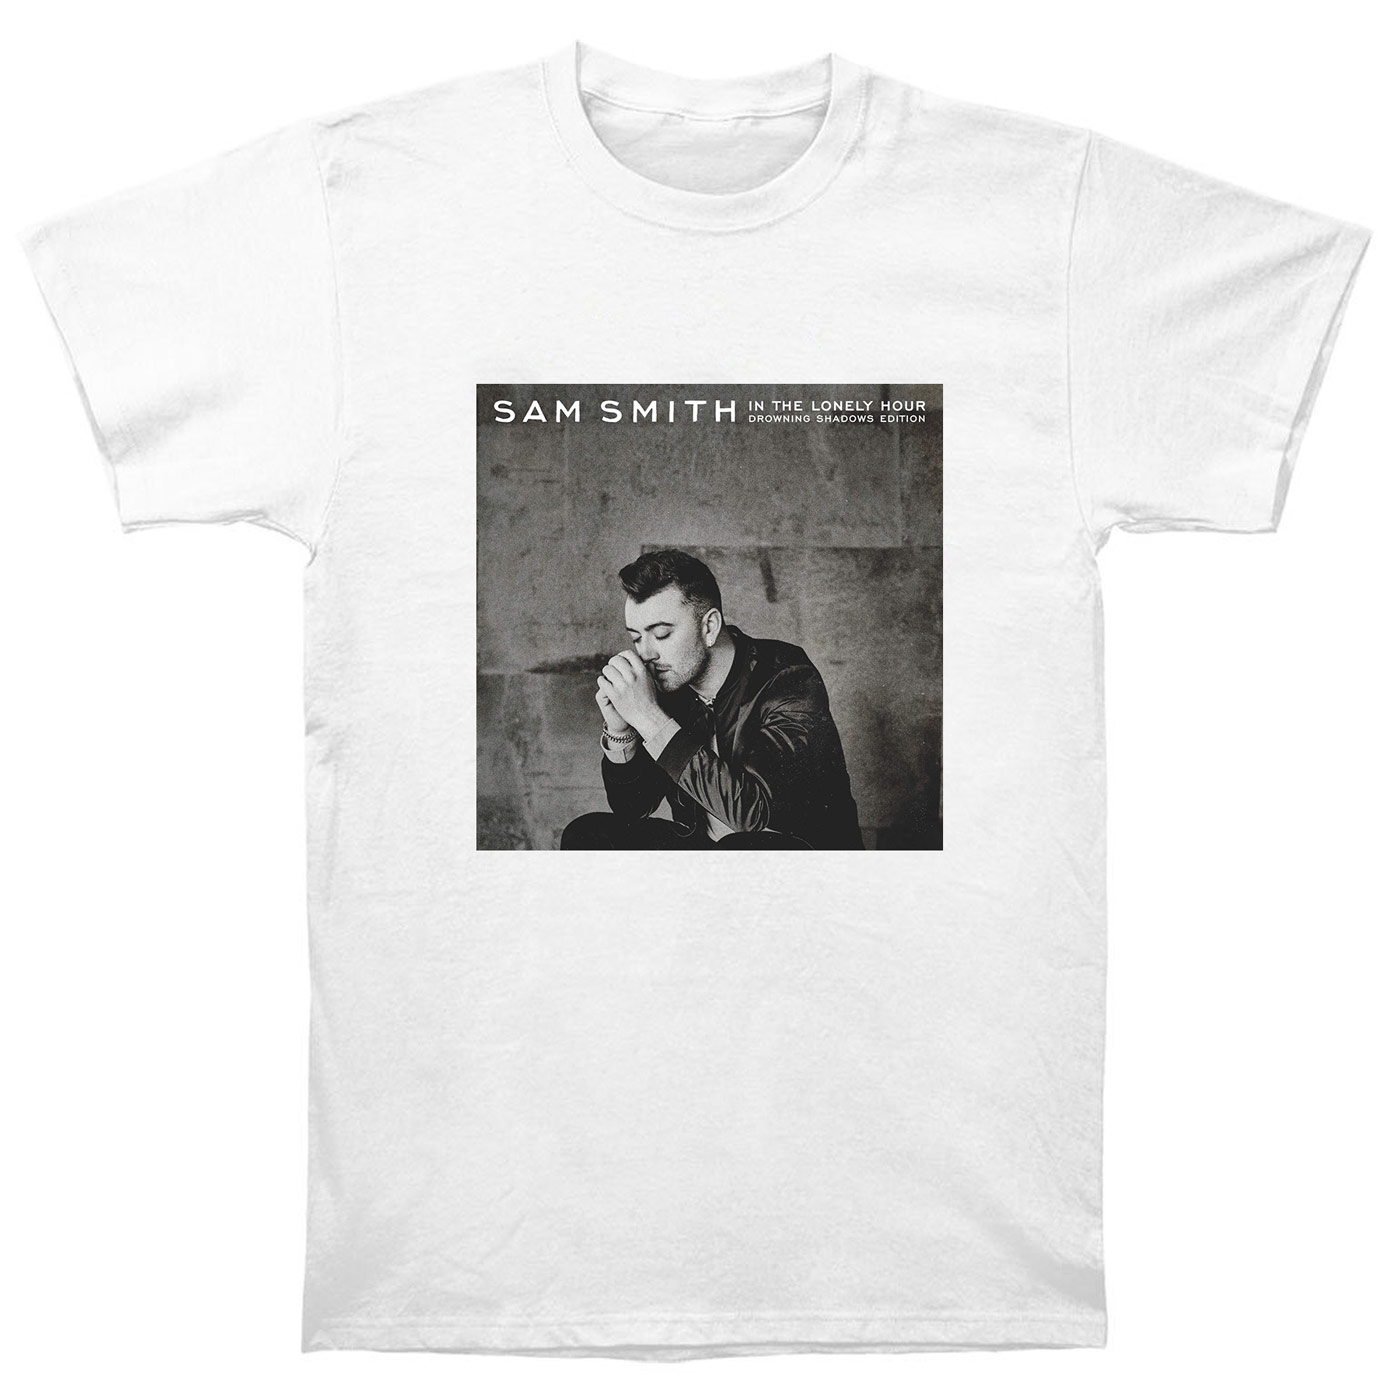 Sam Smith T Shirt Cd In The Lonely Hour Vinyl Poster Drowning Shadows Edition ST2Одежда и ак�е��уары<br><br><br>Aliexpress